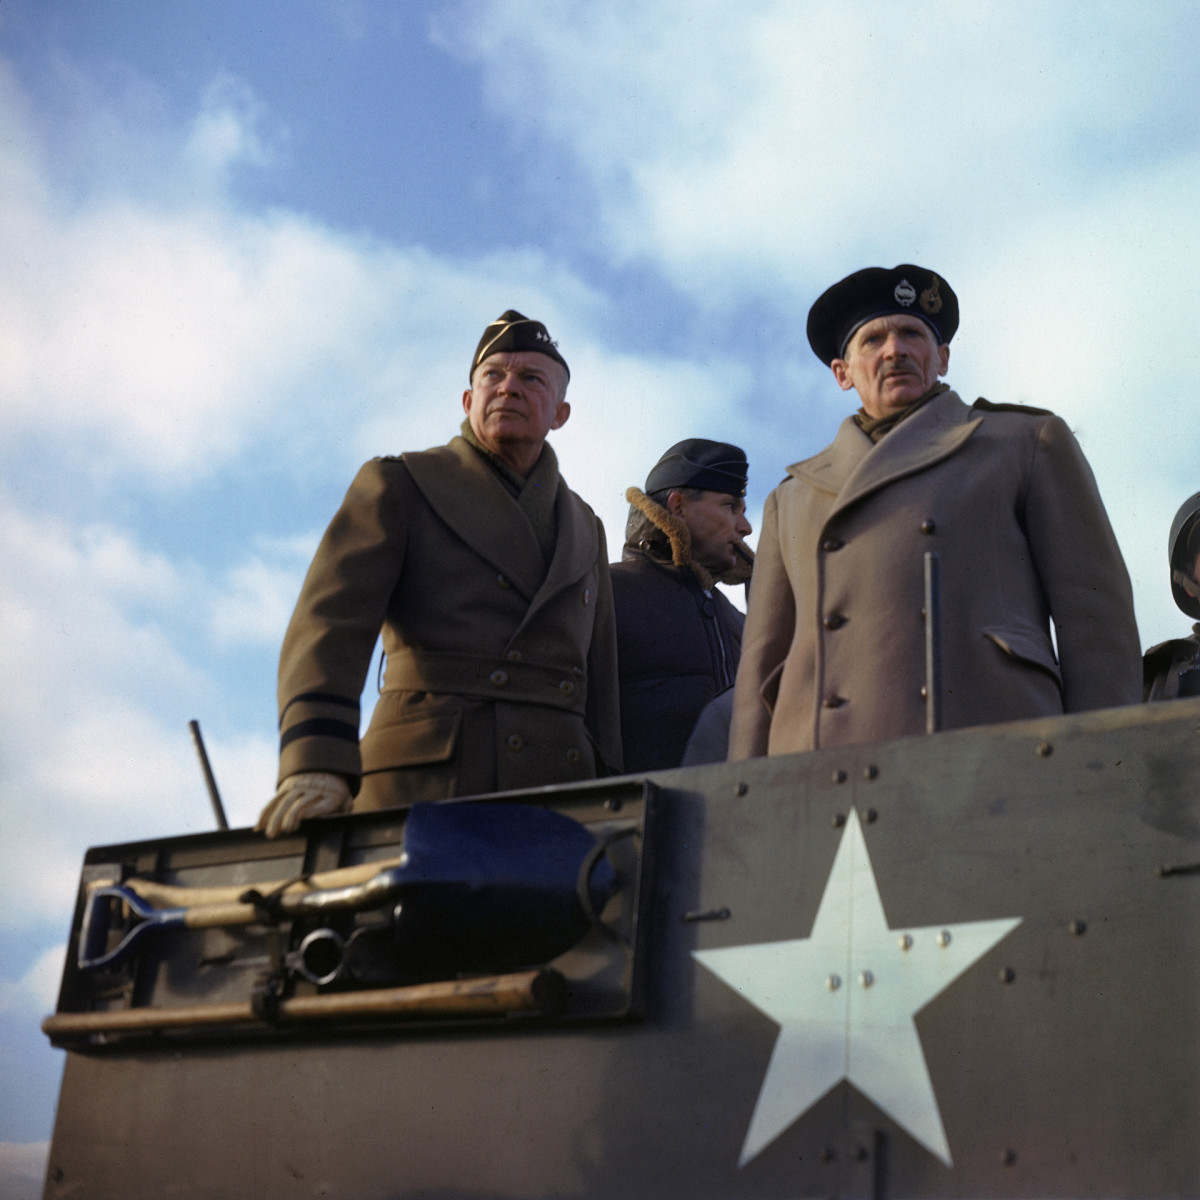 General Dwight D. Eisenhower, with his deputy, British Chief Air Marshal Arthur Tedder, and the principal commander of Allied ground forces in Europe, British General Bernard L. Montgomery in a US armored vehicle as they review a tank exercise in England, 1944.